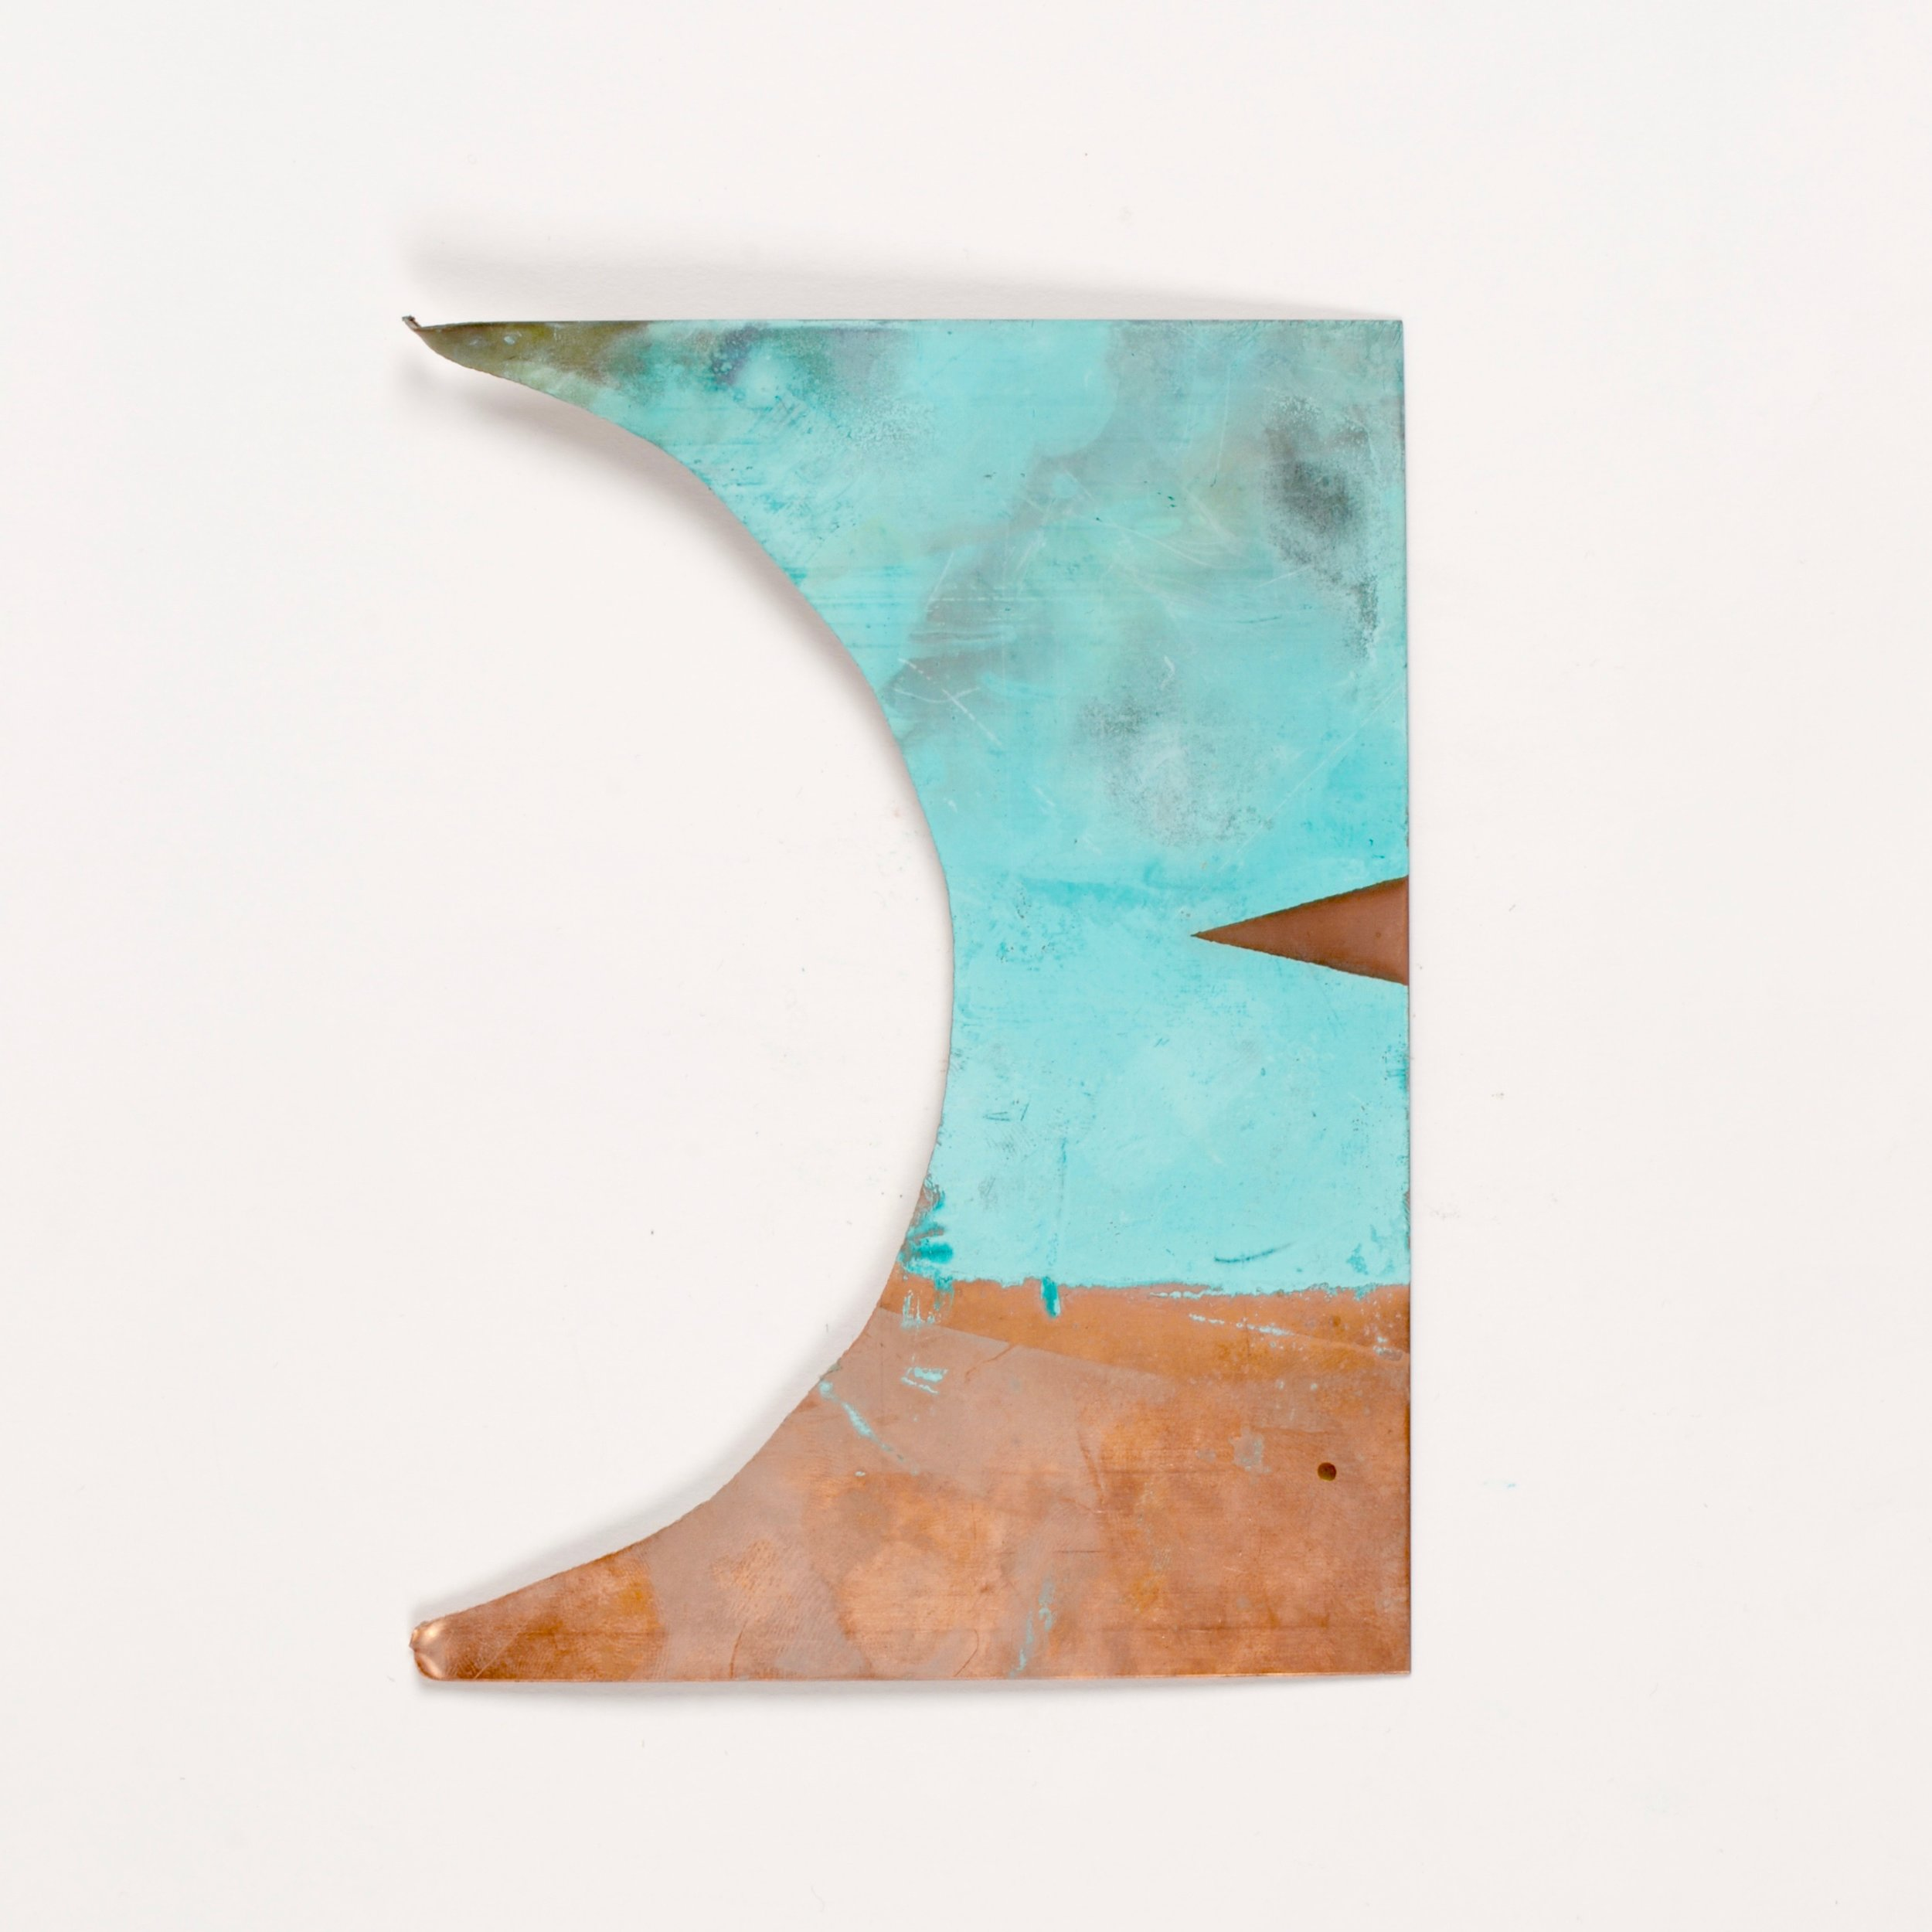 - This example is my favourite, it has a smooth coating of verdigris colourd patina on its surface, I then covered it with tape and sandblasted it to expose the raw copper below. I thought I would produce a simple object using this method.produced by applying copper nitrate onto raw copper with a brush.